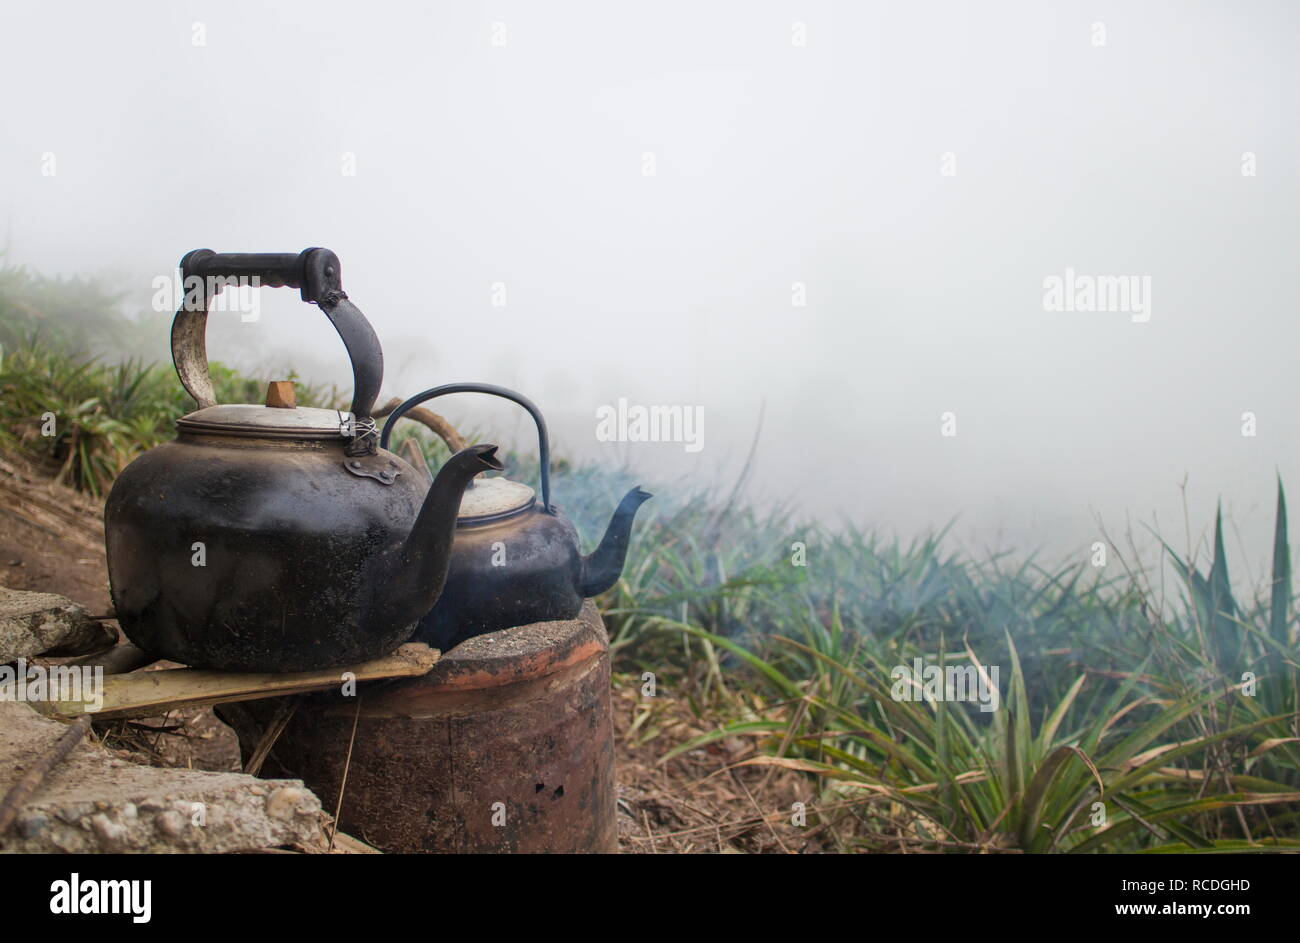 Kettle water on the old stove at field on mountain with fog in winter. - Stock Image